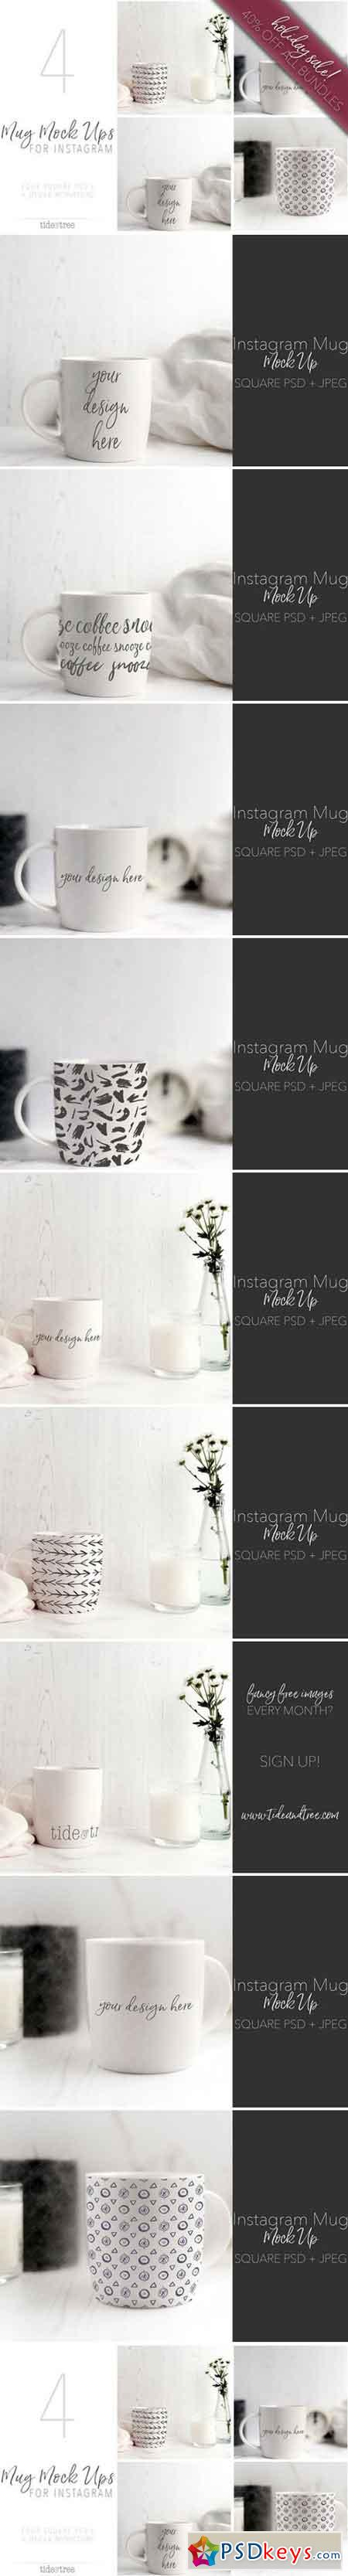 Mug Mock - Ups for Instagram 2113174